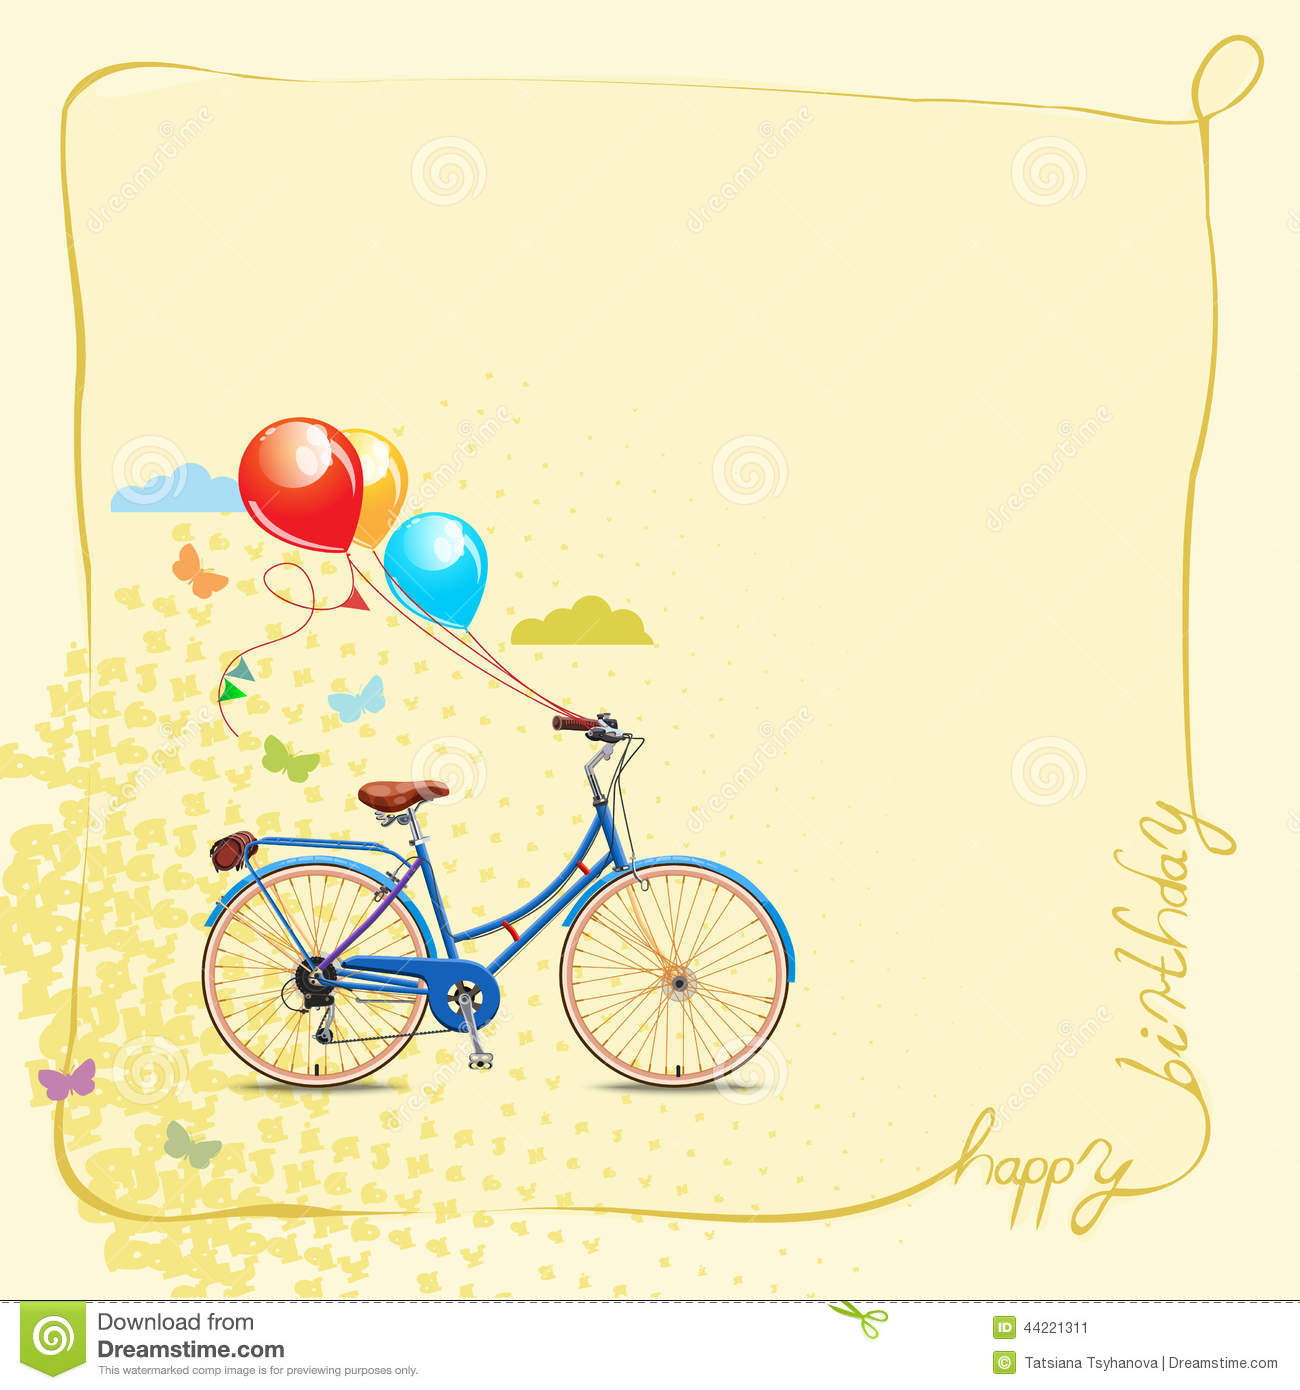 Birthday greeting card with bicycle and balloons in vintage style birthday greeting card in cartoon style with bicycle and balloons vector illustration stock image kristyandbryce Image collections